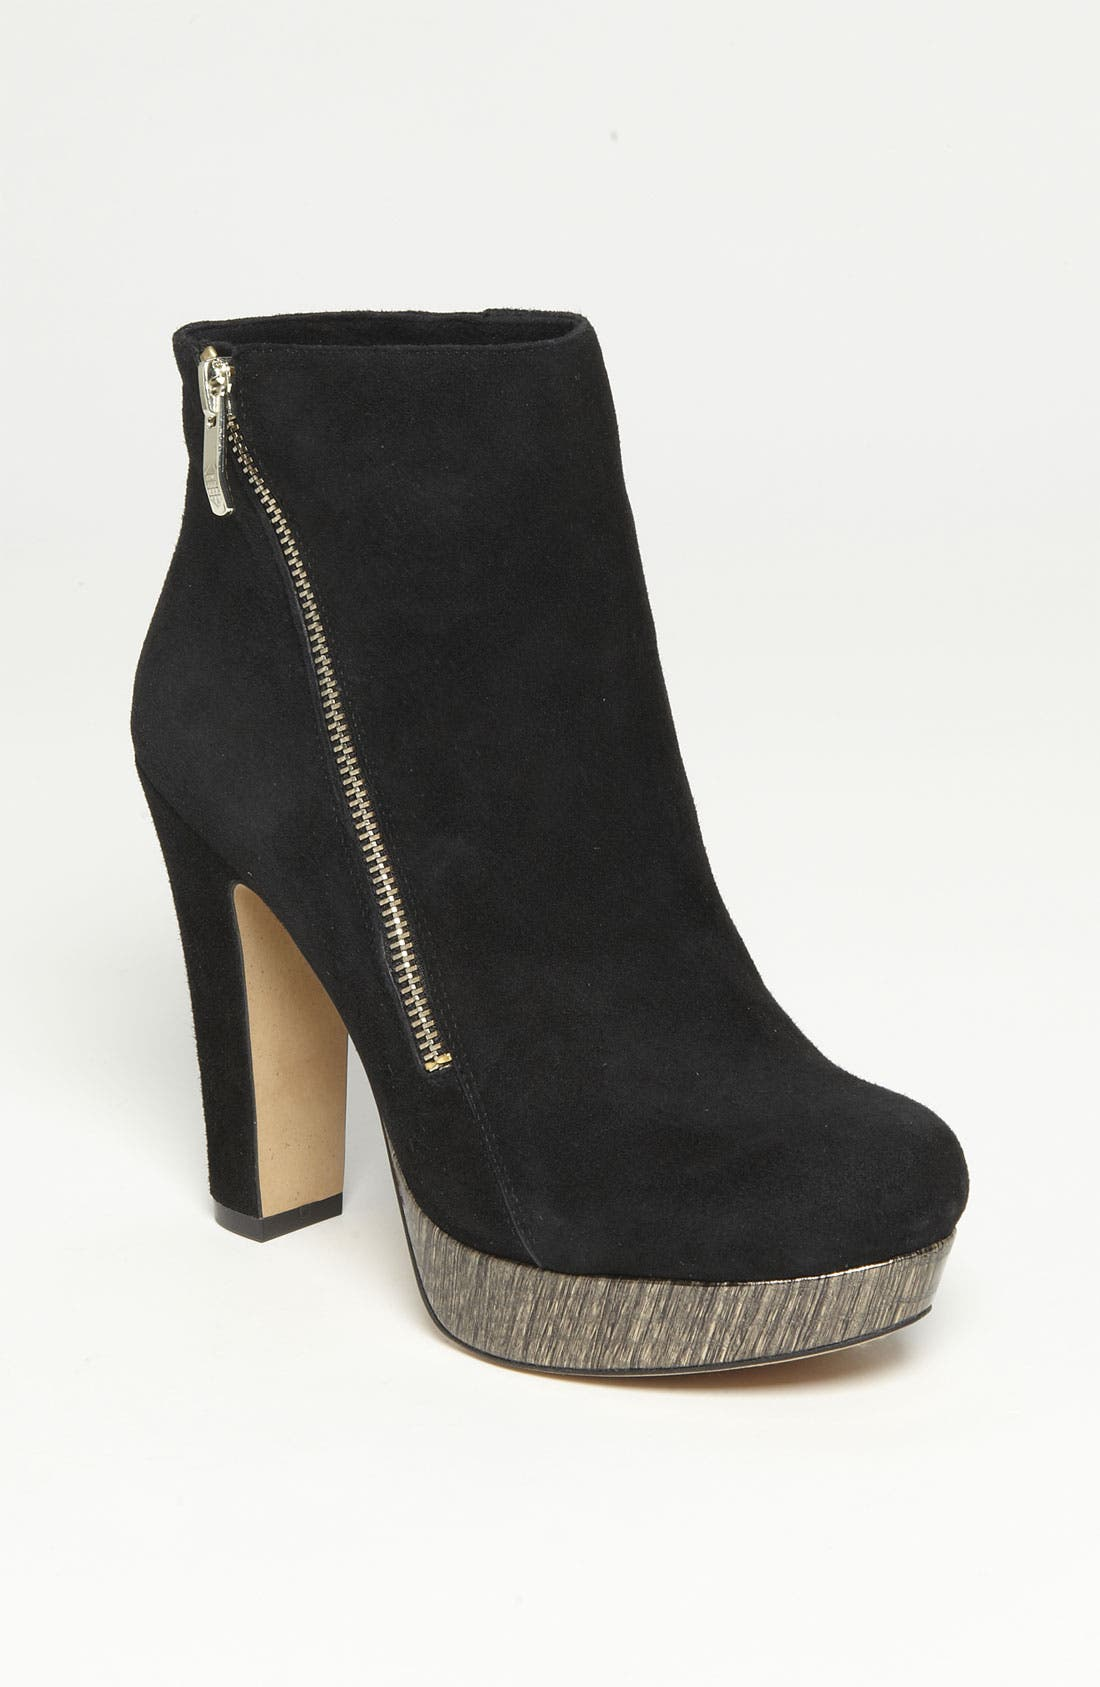 Main Image - Vince Camuto 'Jerra' Bootie